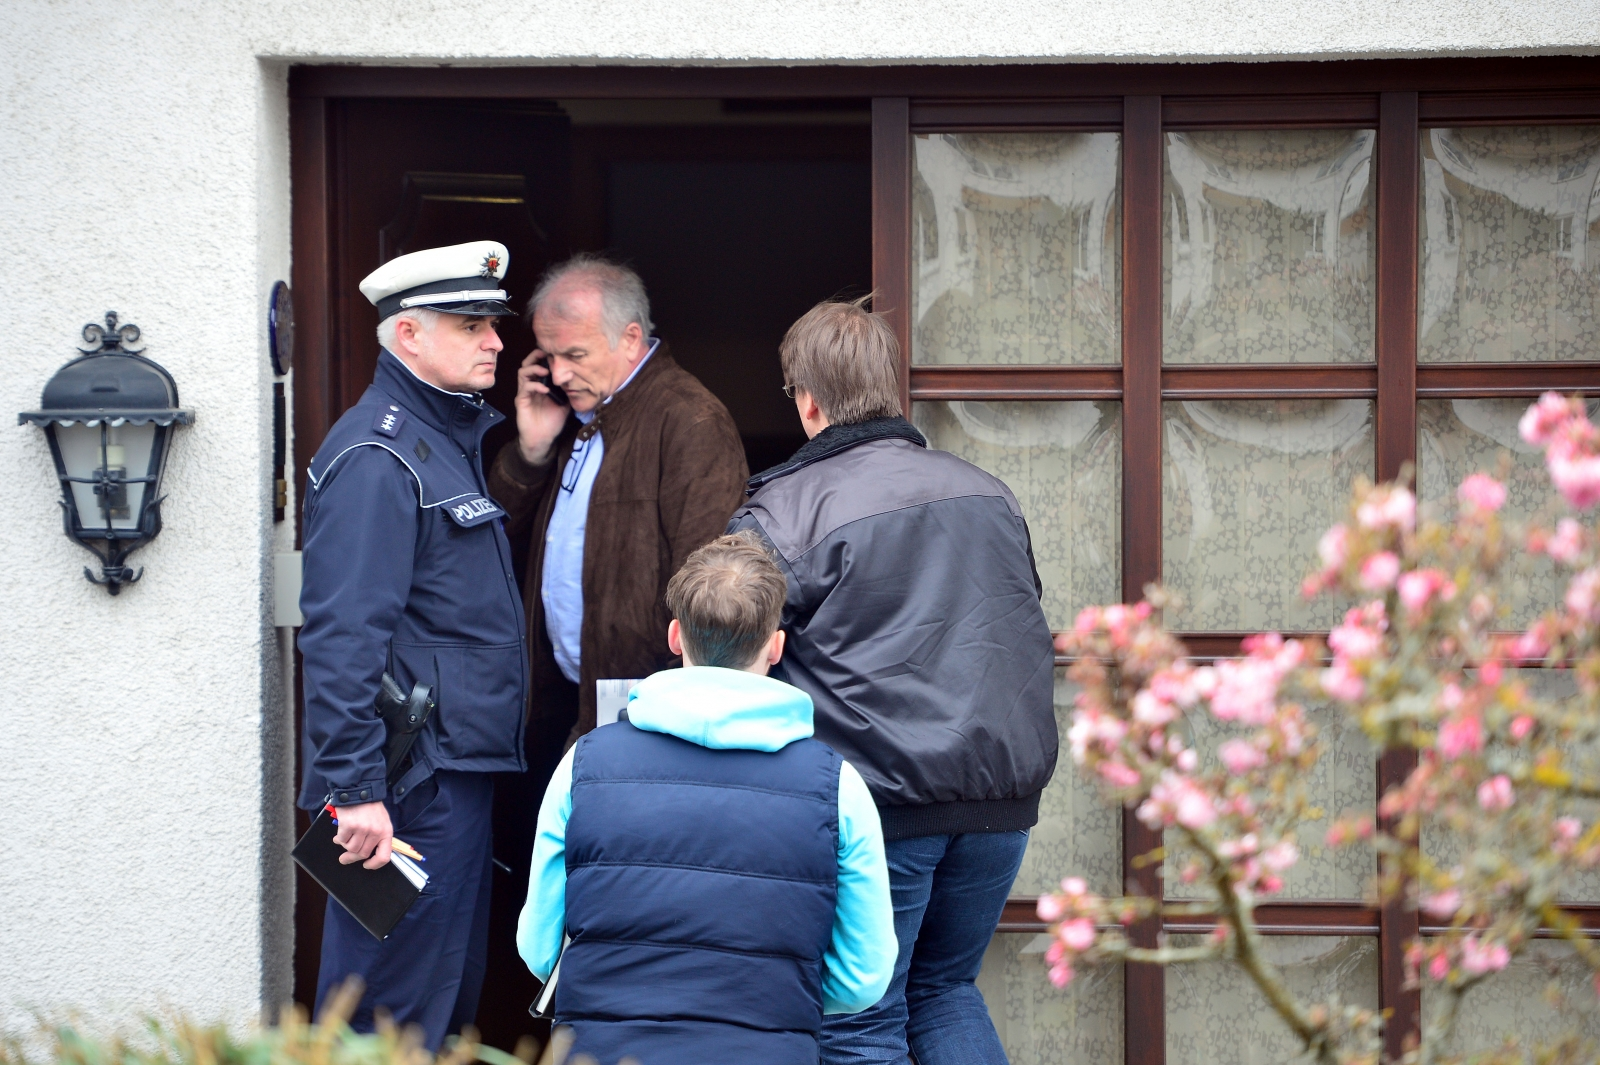 'Significant find' at Andreas Lubitz's home